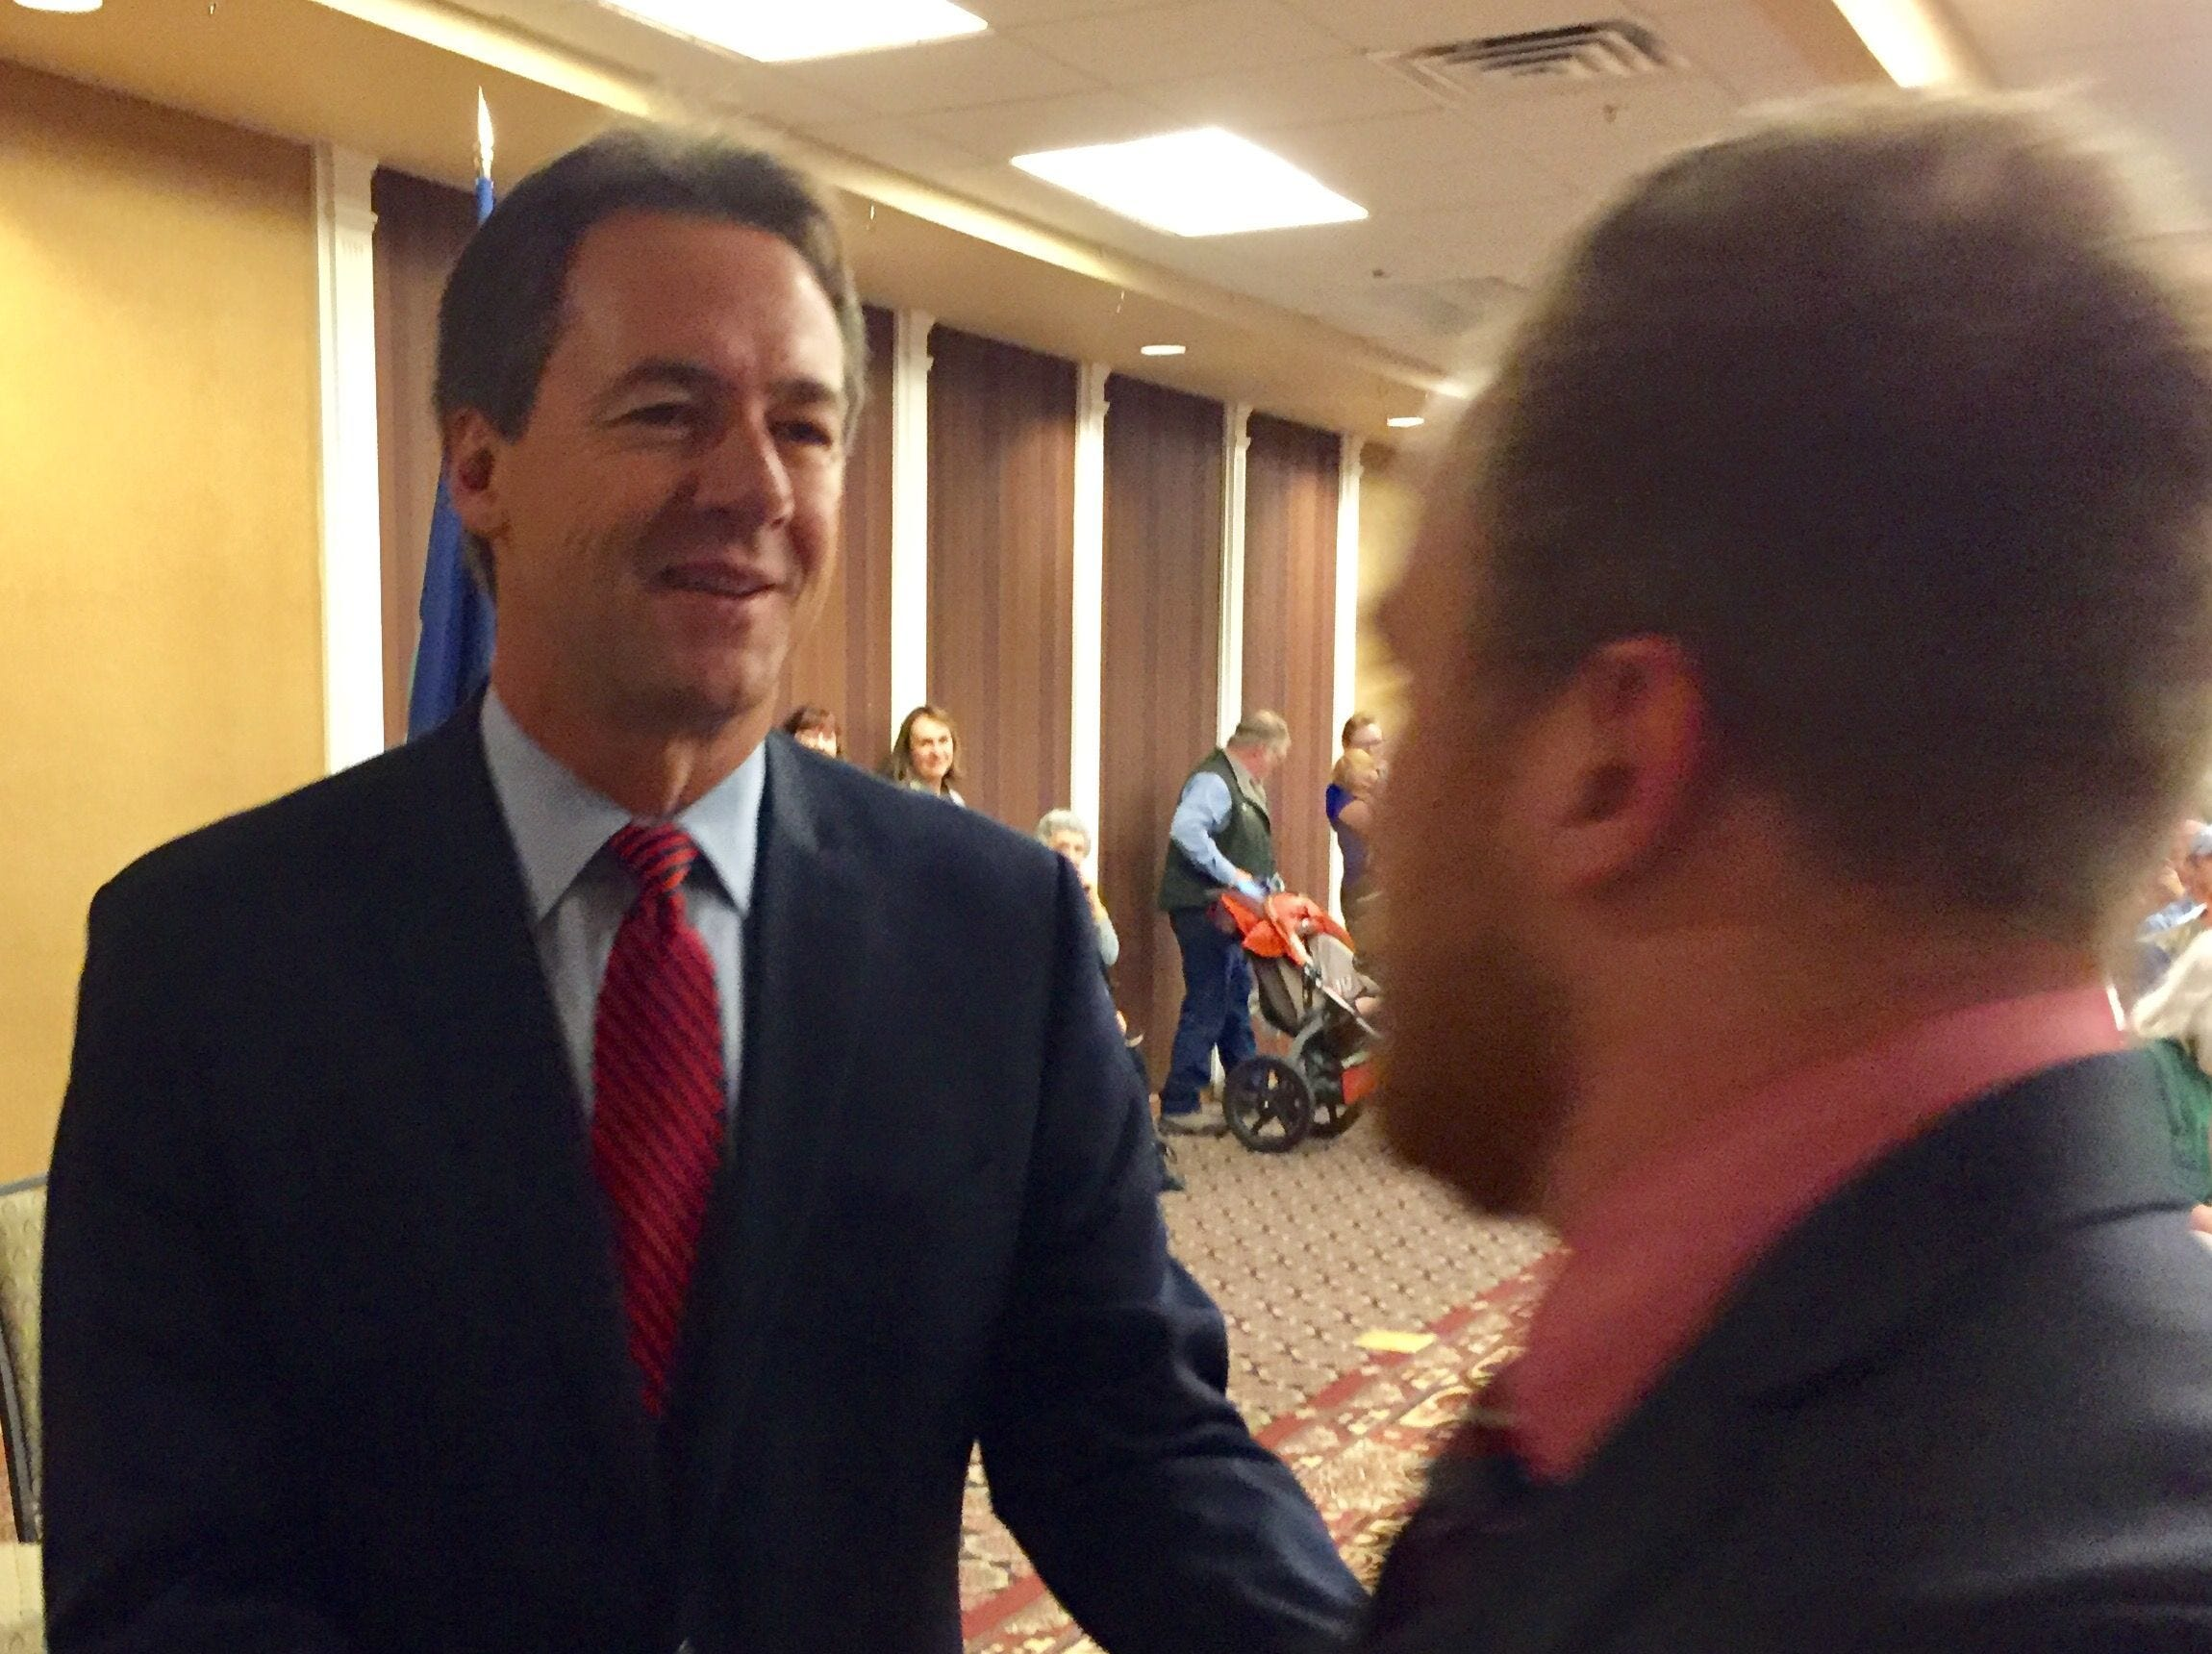 Gov, Steve Bullock, left, congratulates a state employee at an event Monday honoring excellence in performance.  Photos by Tribune photo/Phil Drake Gov, Steve Bullock, left, congratulates a state employee at an event Monday honoring excellence in performance.